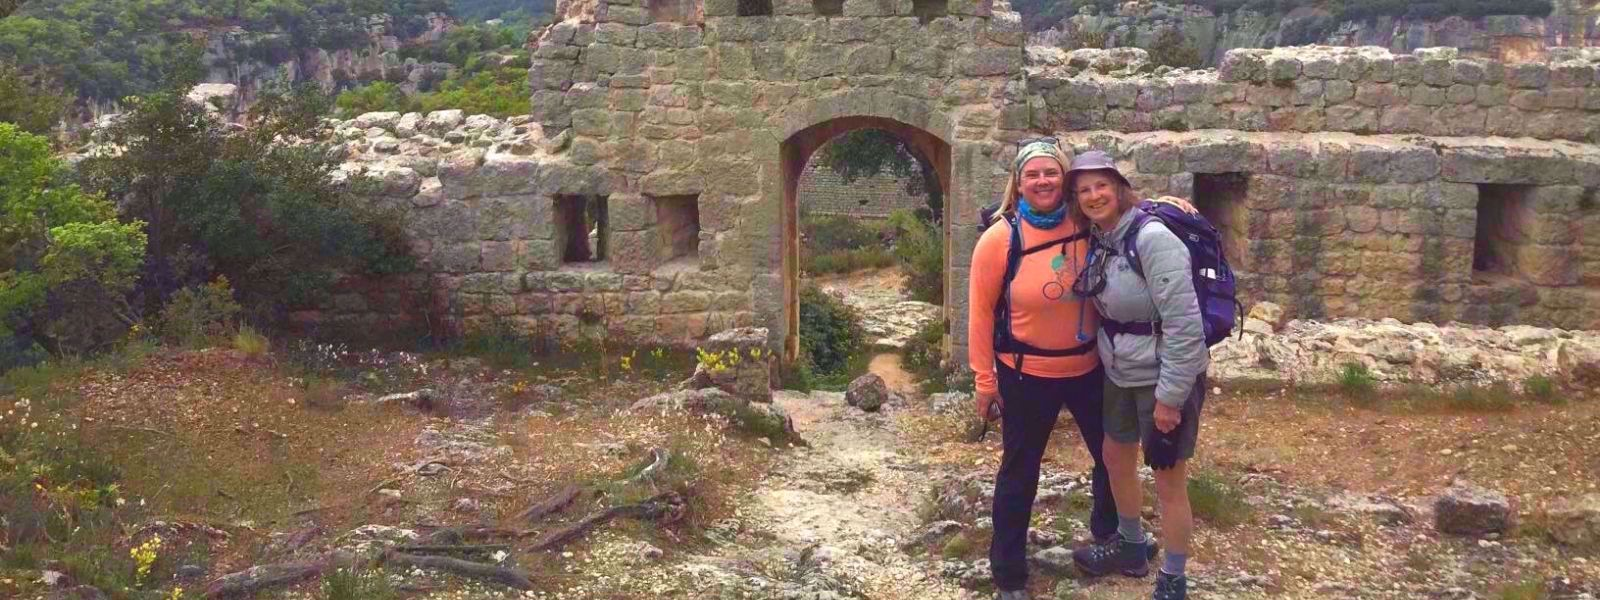 The Remarkable Experience of Mother-Daughter Travel